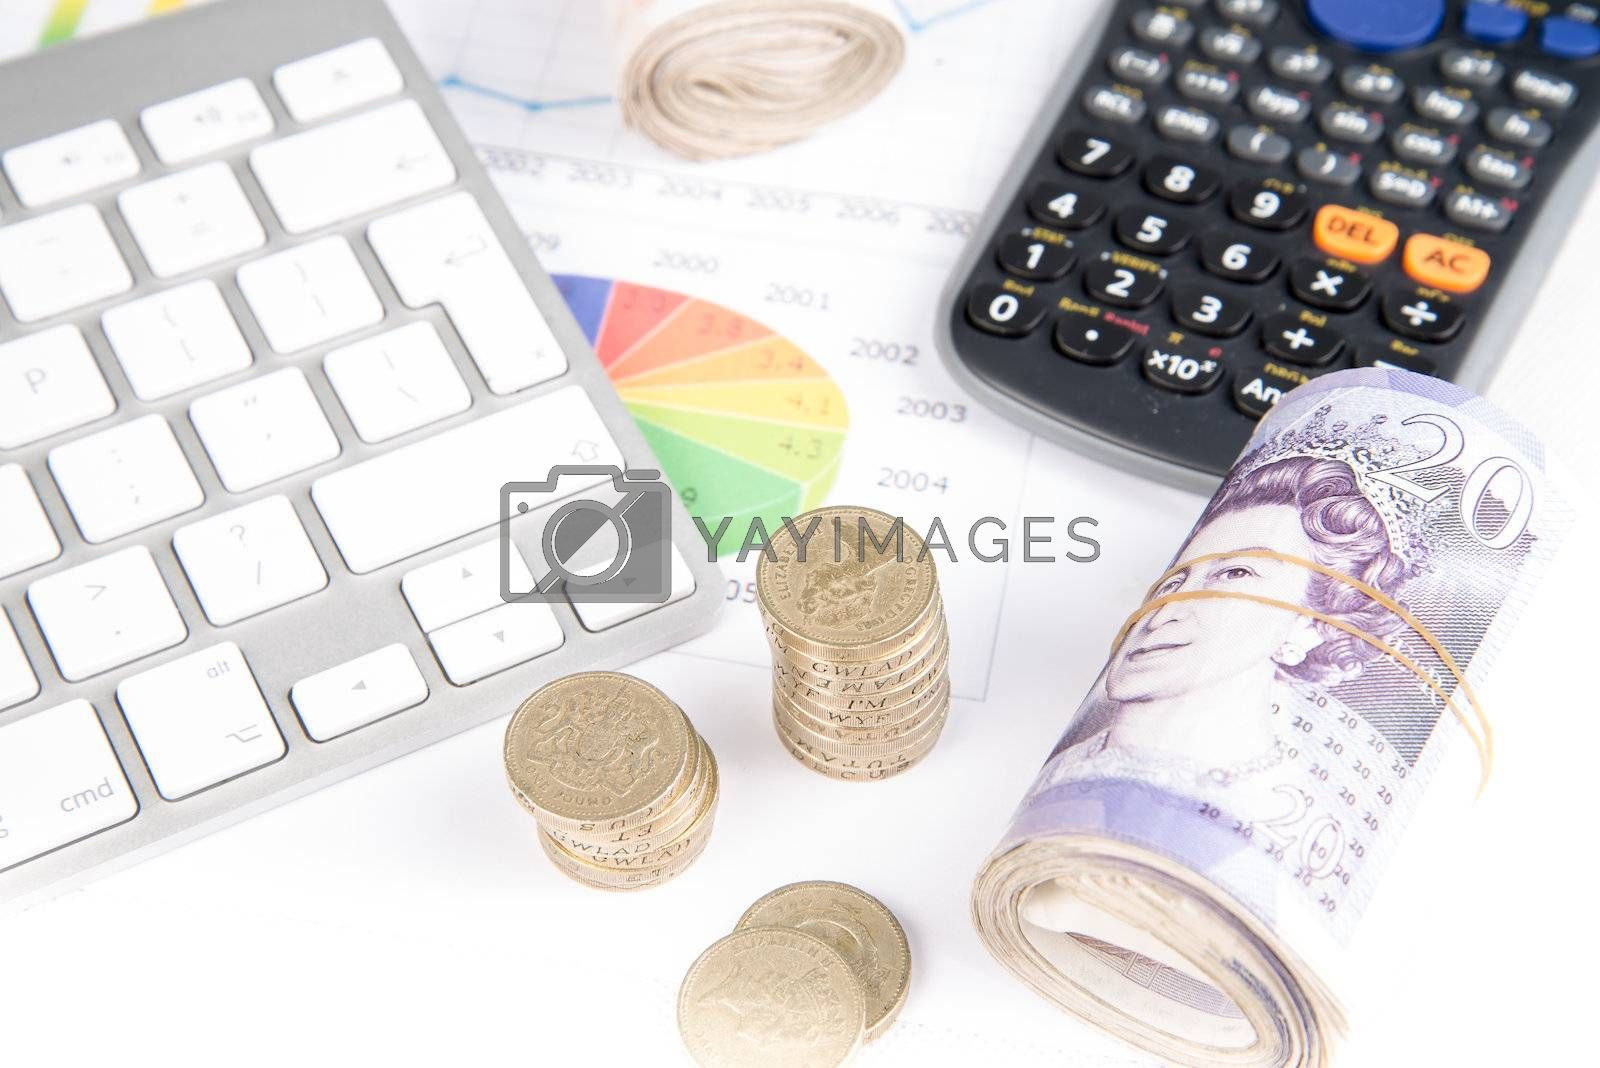 British pound sterling coins and bank notes on desk